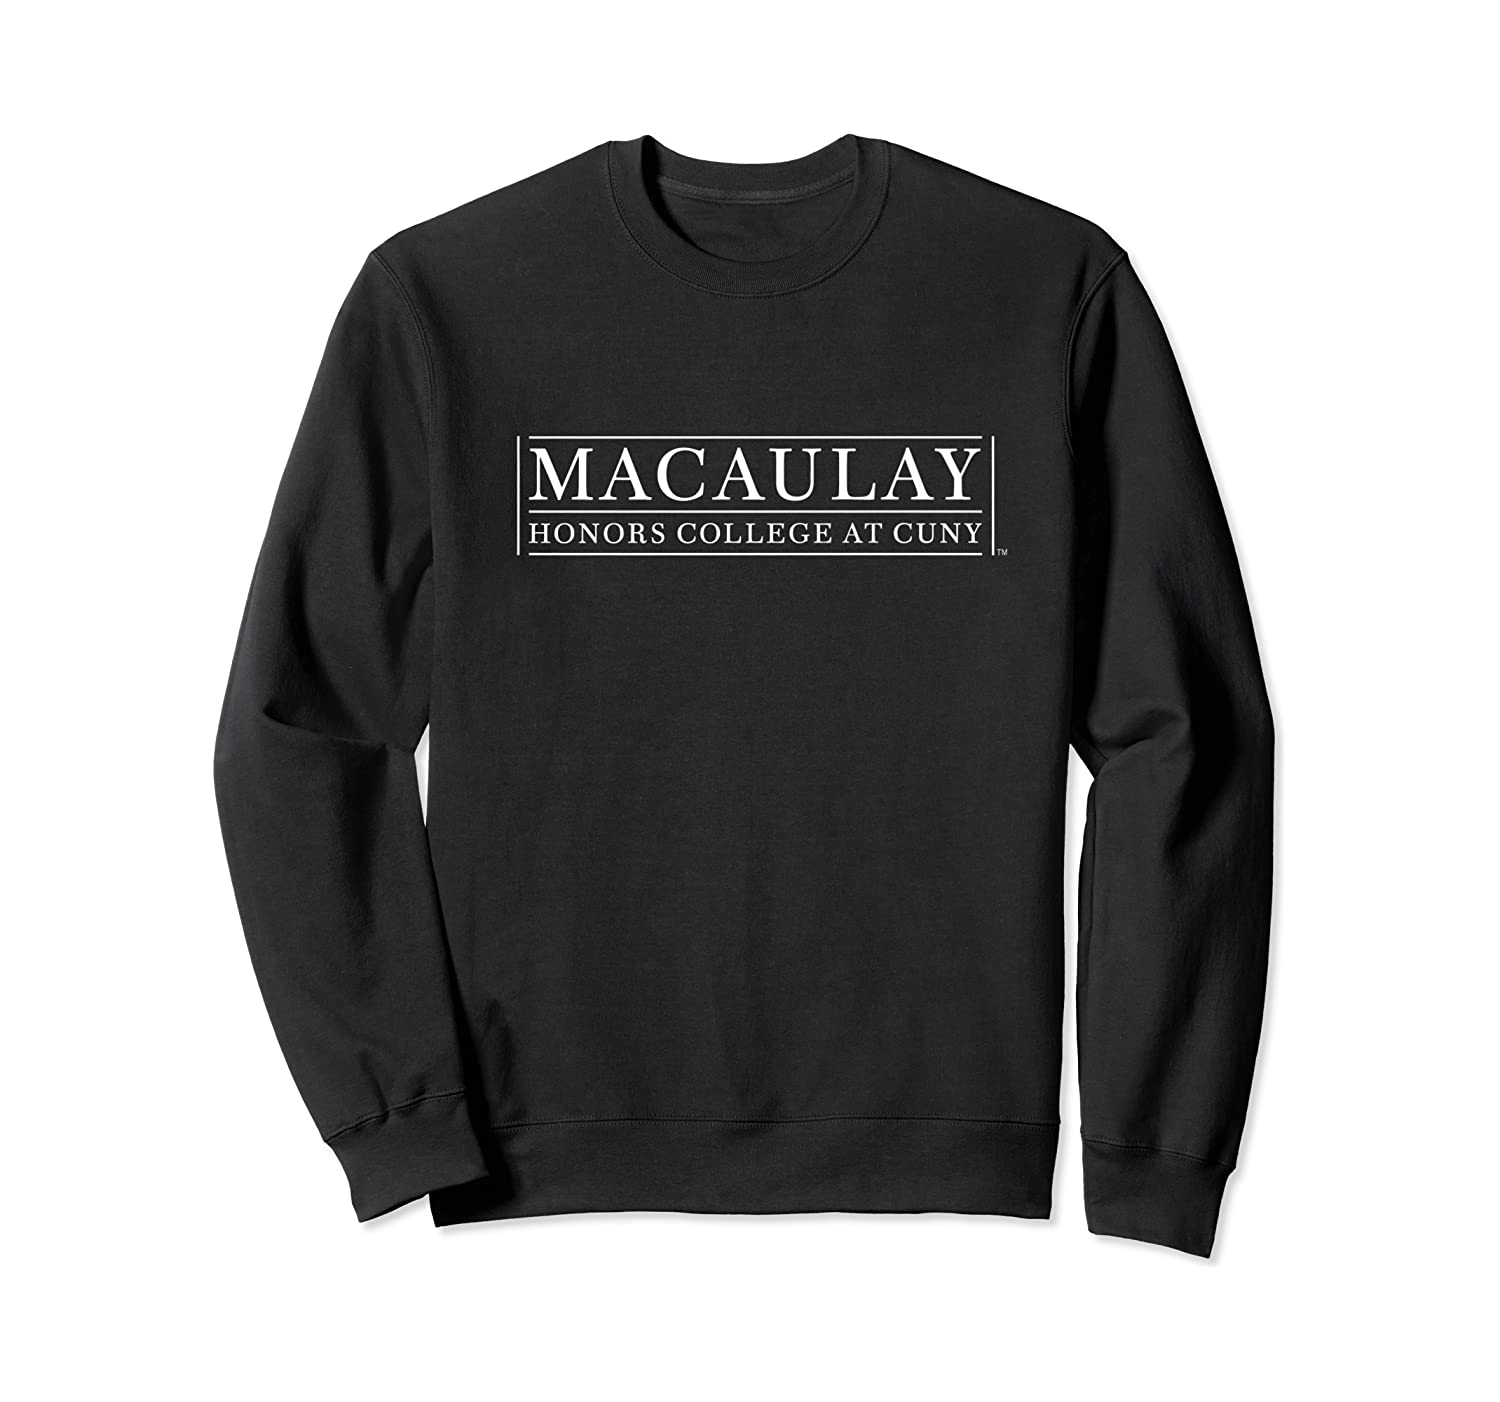 Macaulay Honors College Mountain Lions T-shirt Ppmhc01 Crewneck Sweater